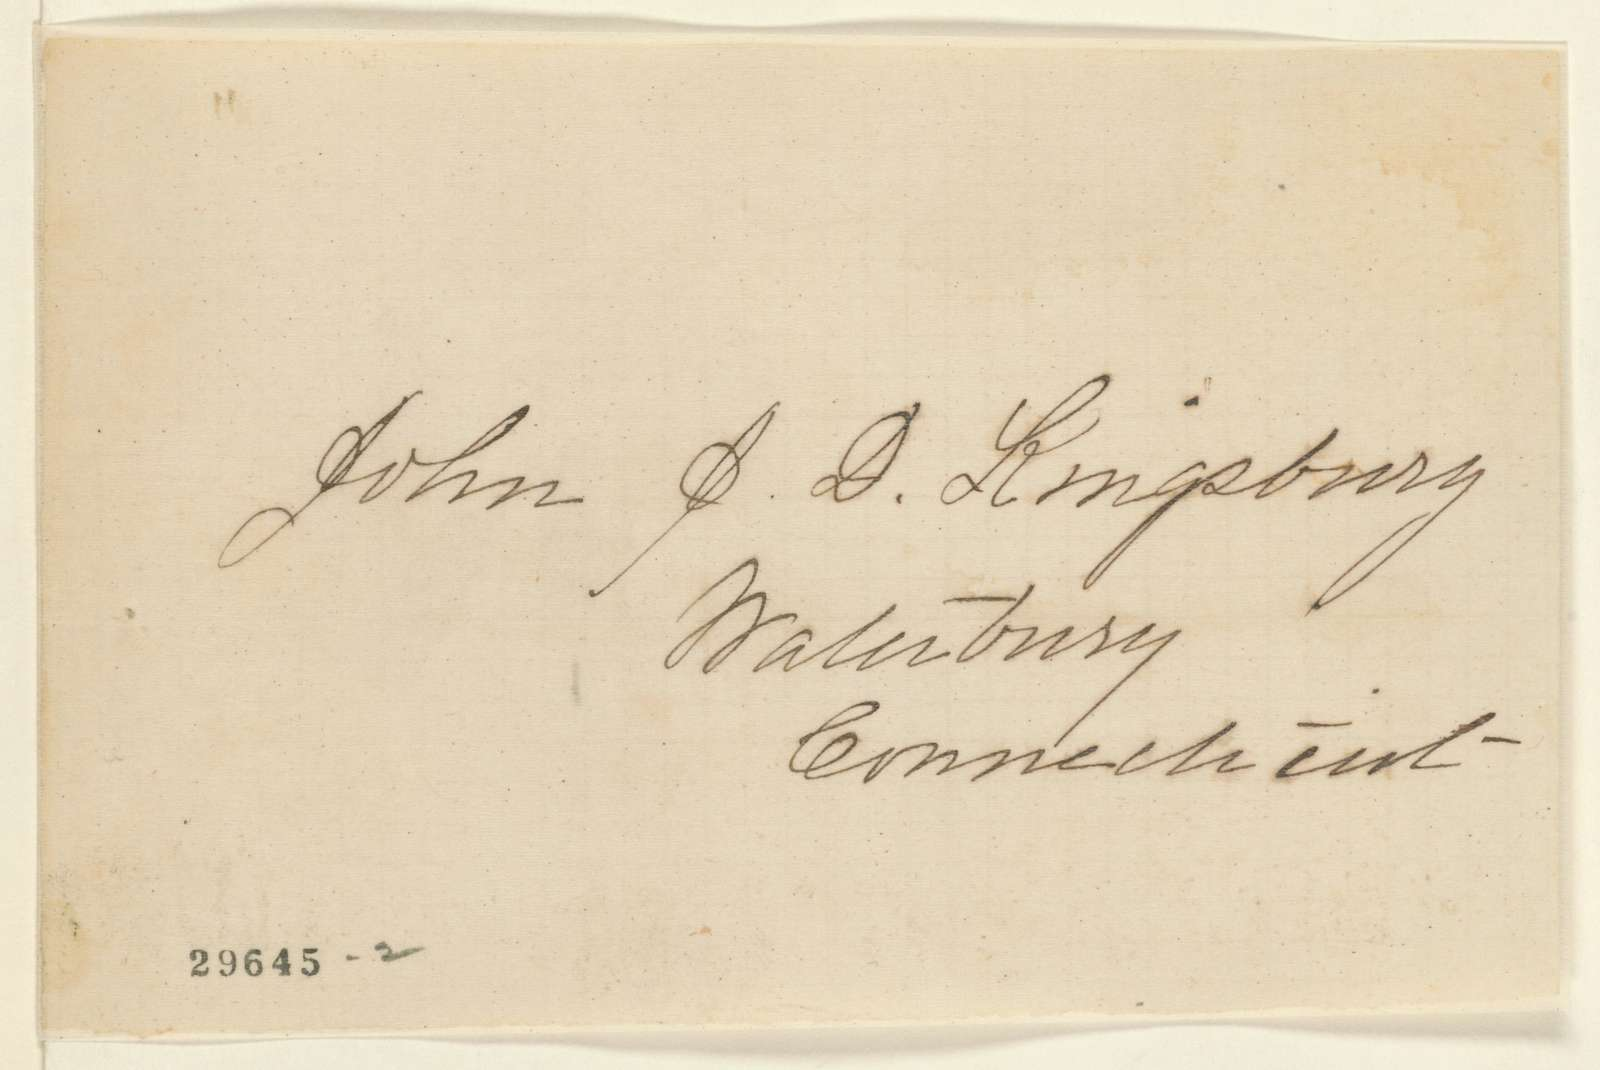 Abraham Lincoln papers: Series 1. General Correspondence. 1833-1916: John J. D. Kingsbury, ND (Cover with address only)